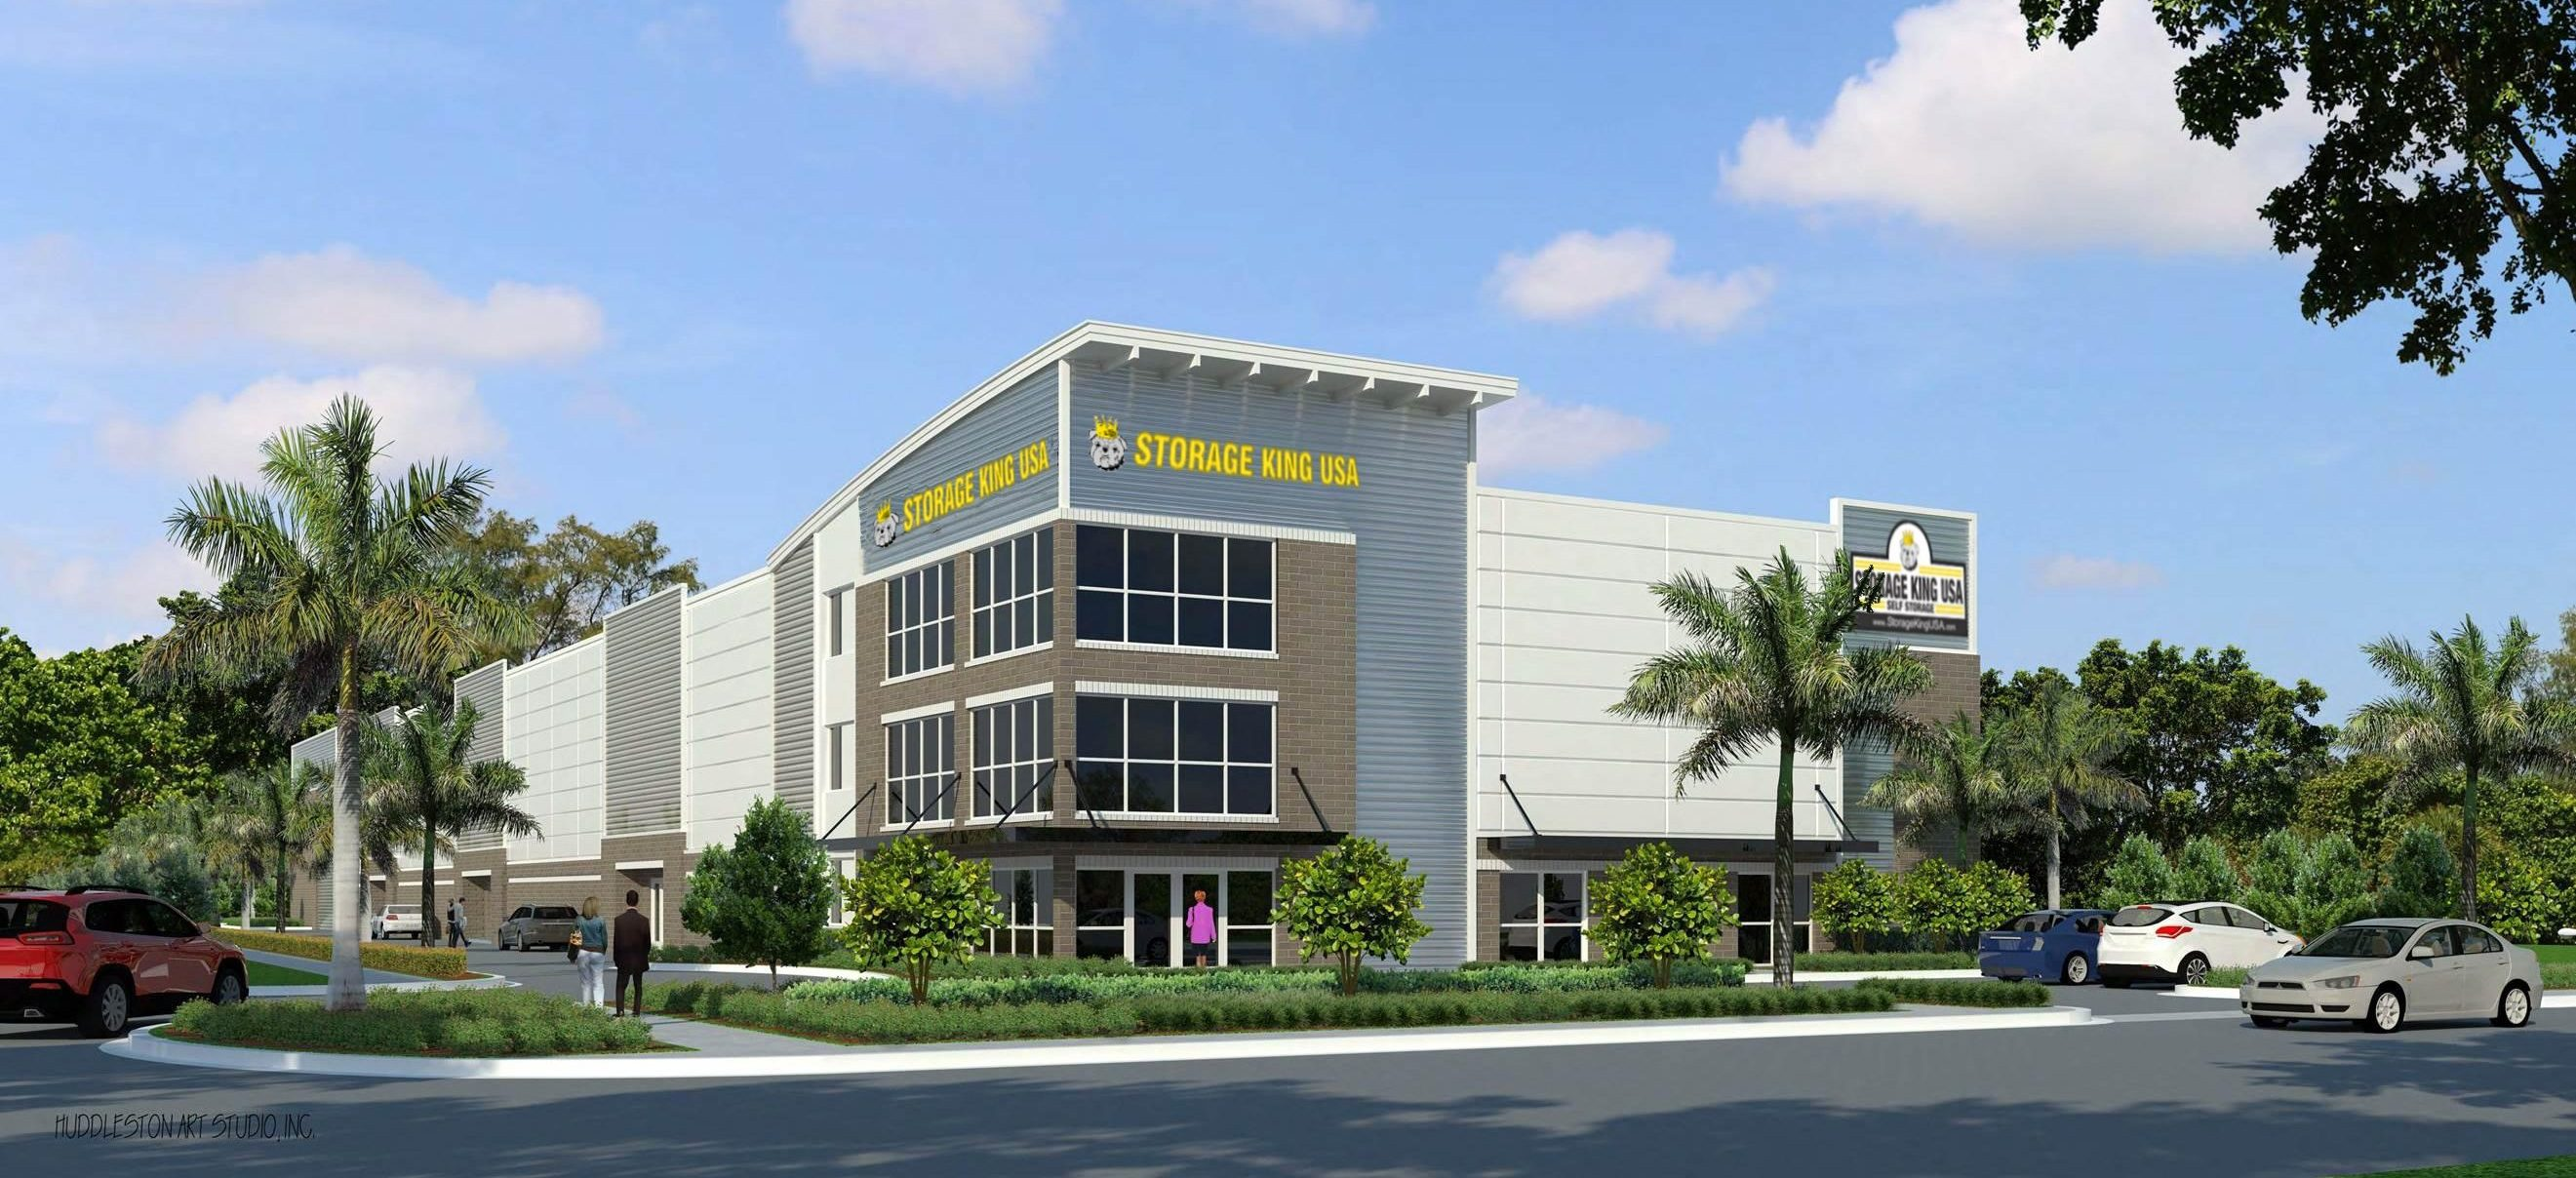 Hollywood, FL – Developing a new, climate controlled multi-story, 125,000 square foot facility